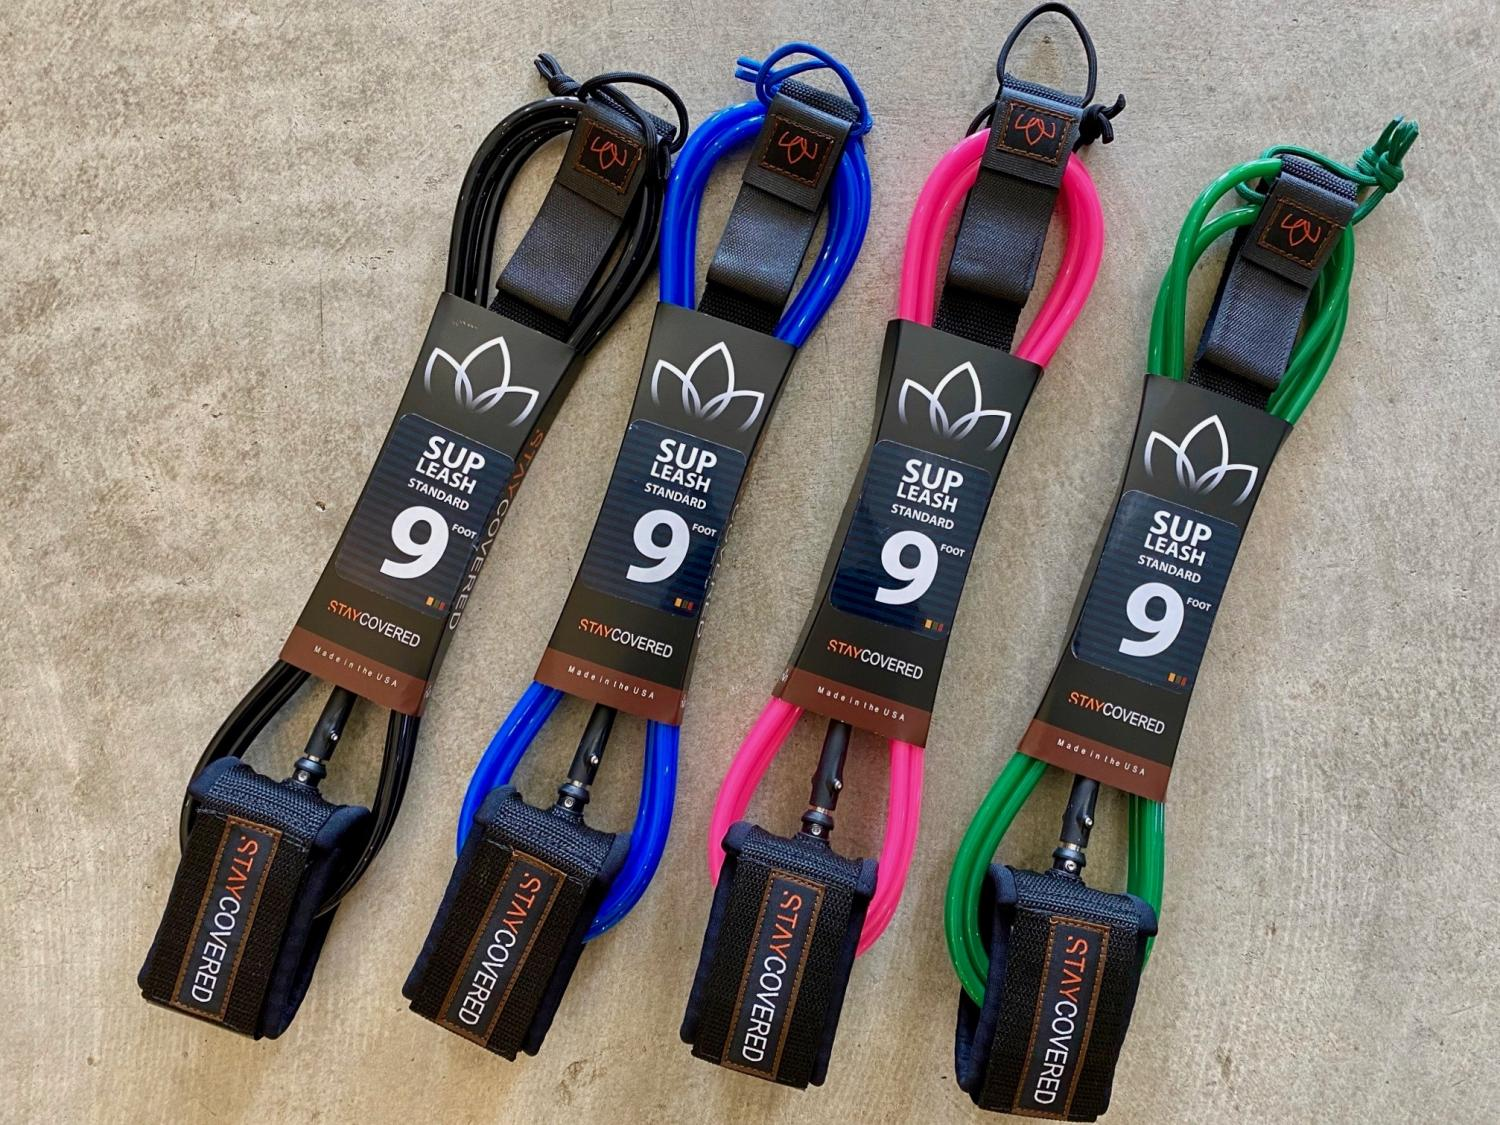 9 Stay Covered SUP Surf Leash